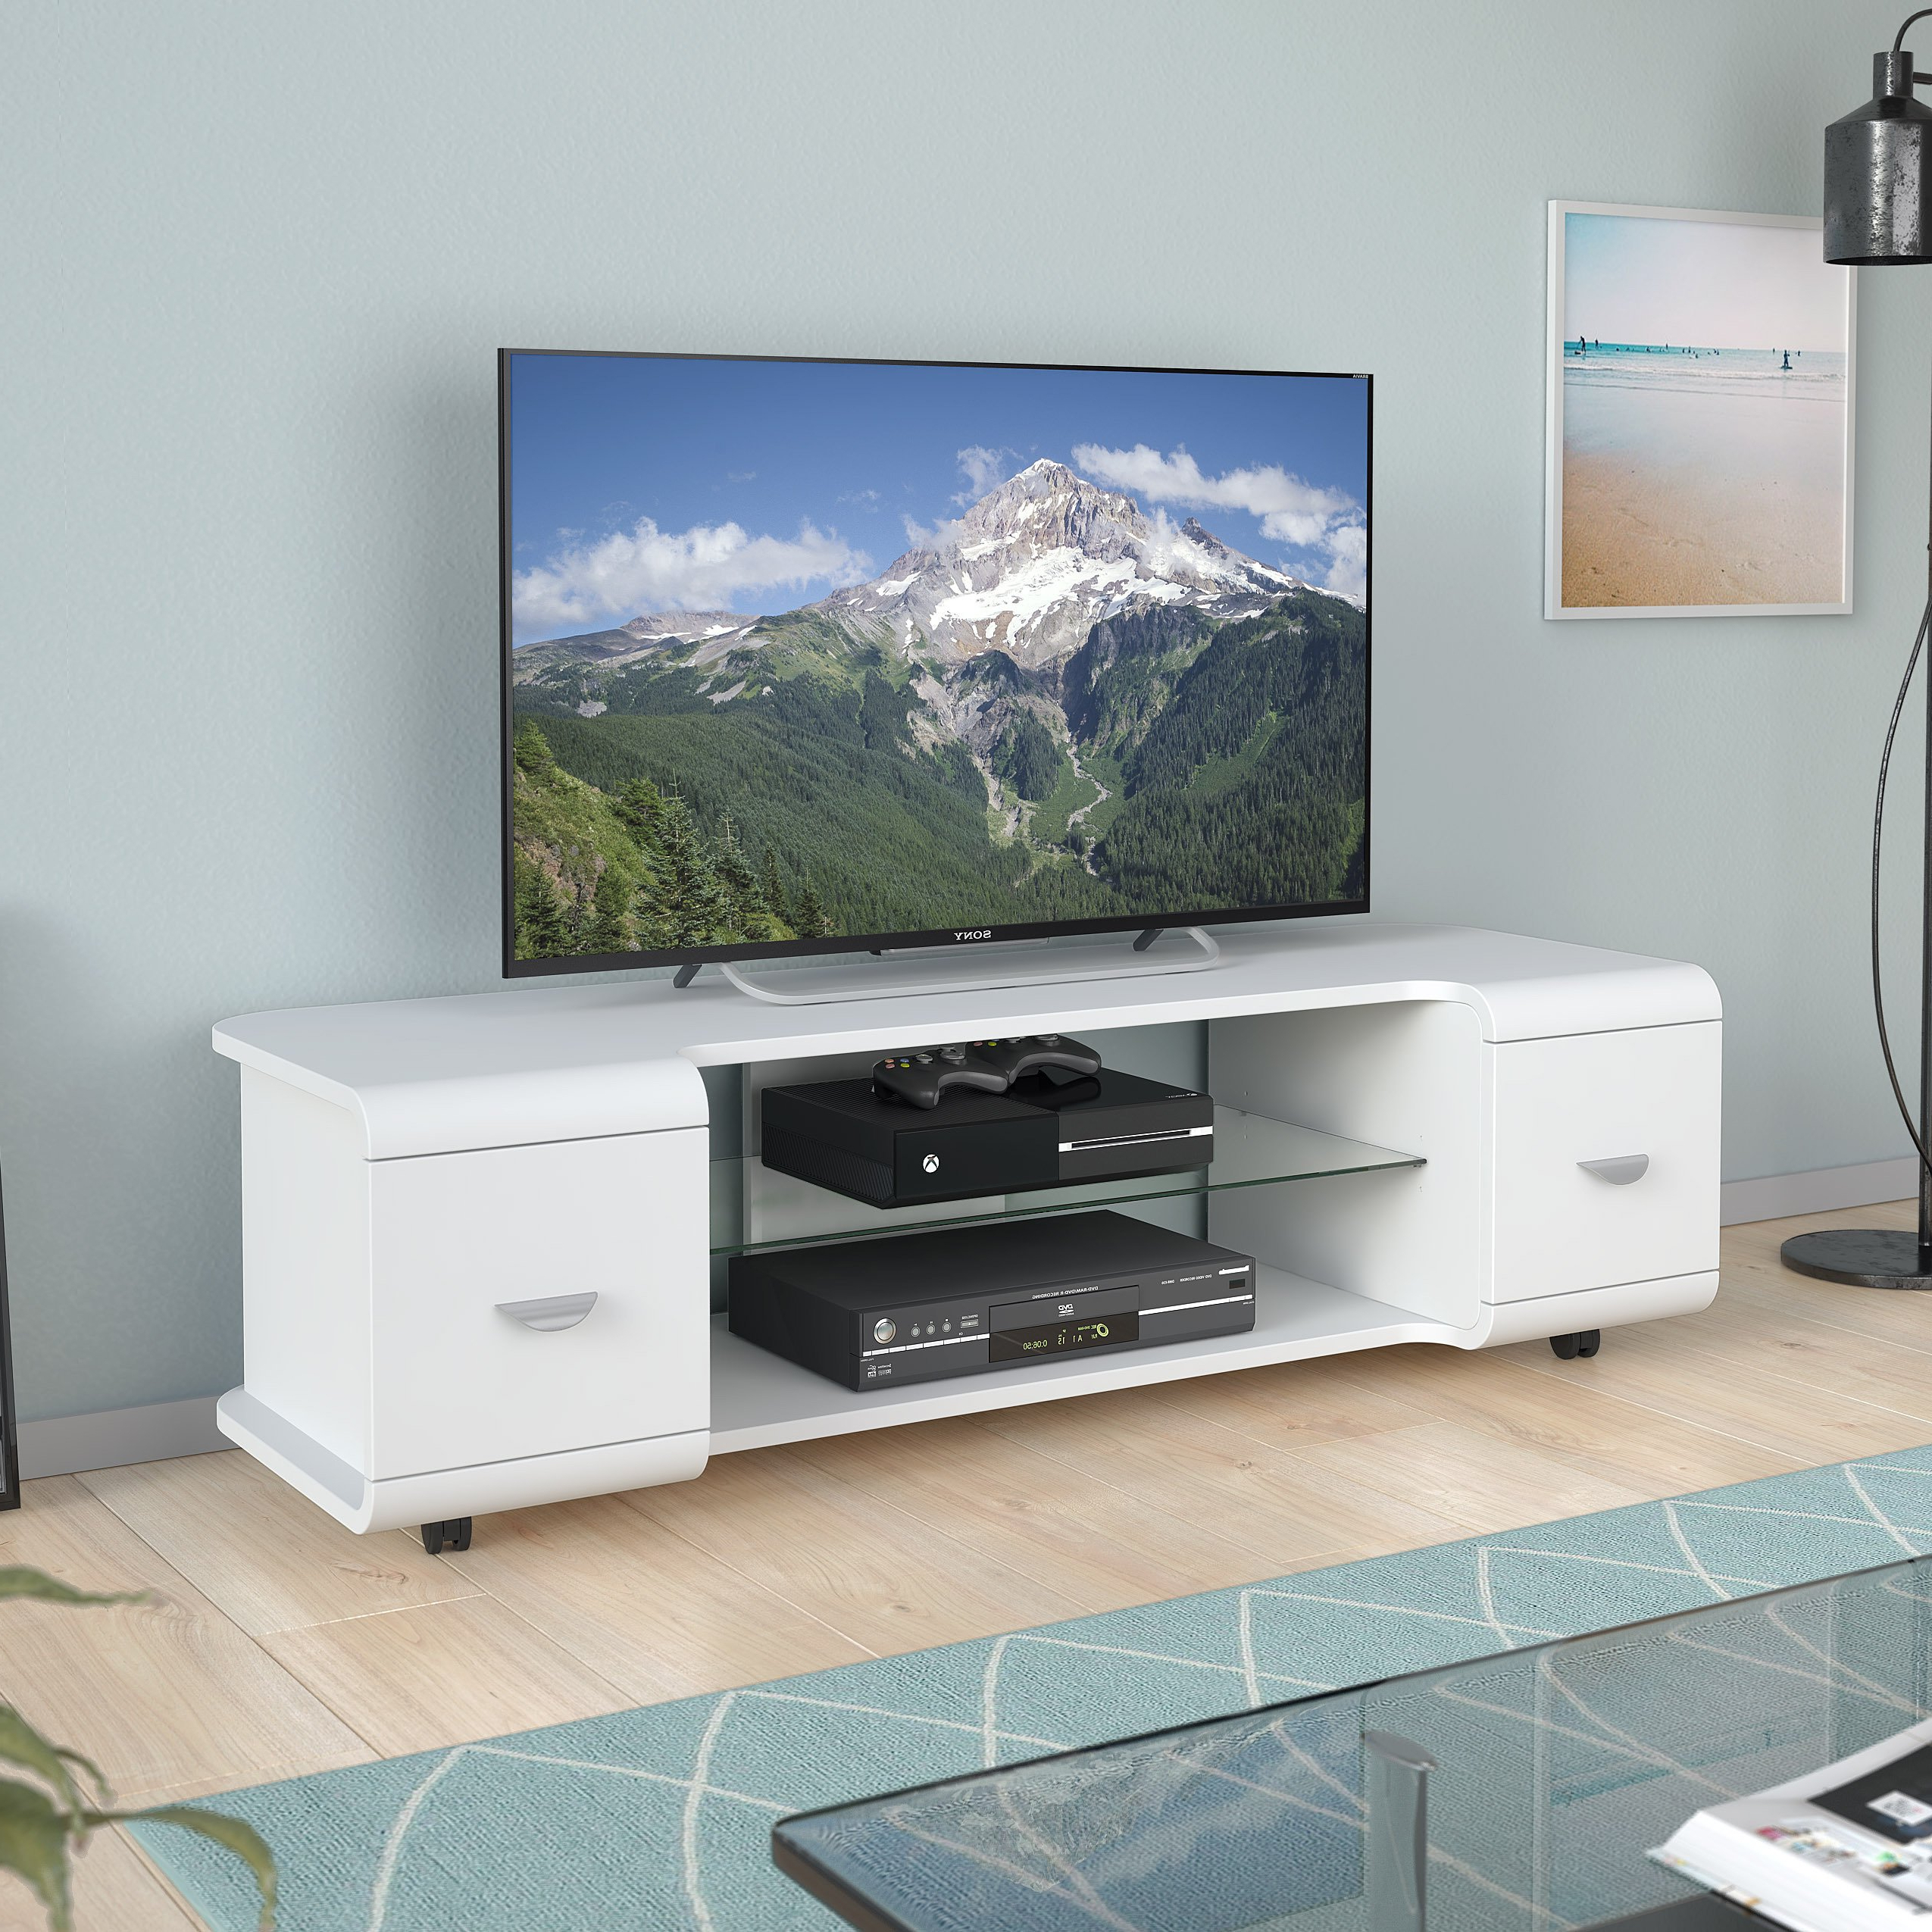 Shop Corliving Panorama Tv Stand With Casters, For Tvs Up To 65 Intended For Favorite Panorama Tv Stands (View 15 of 20)